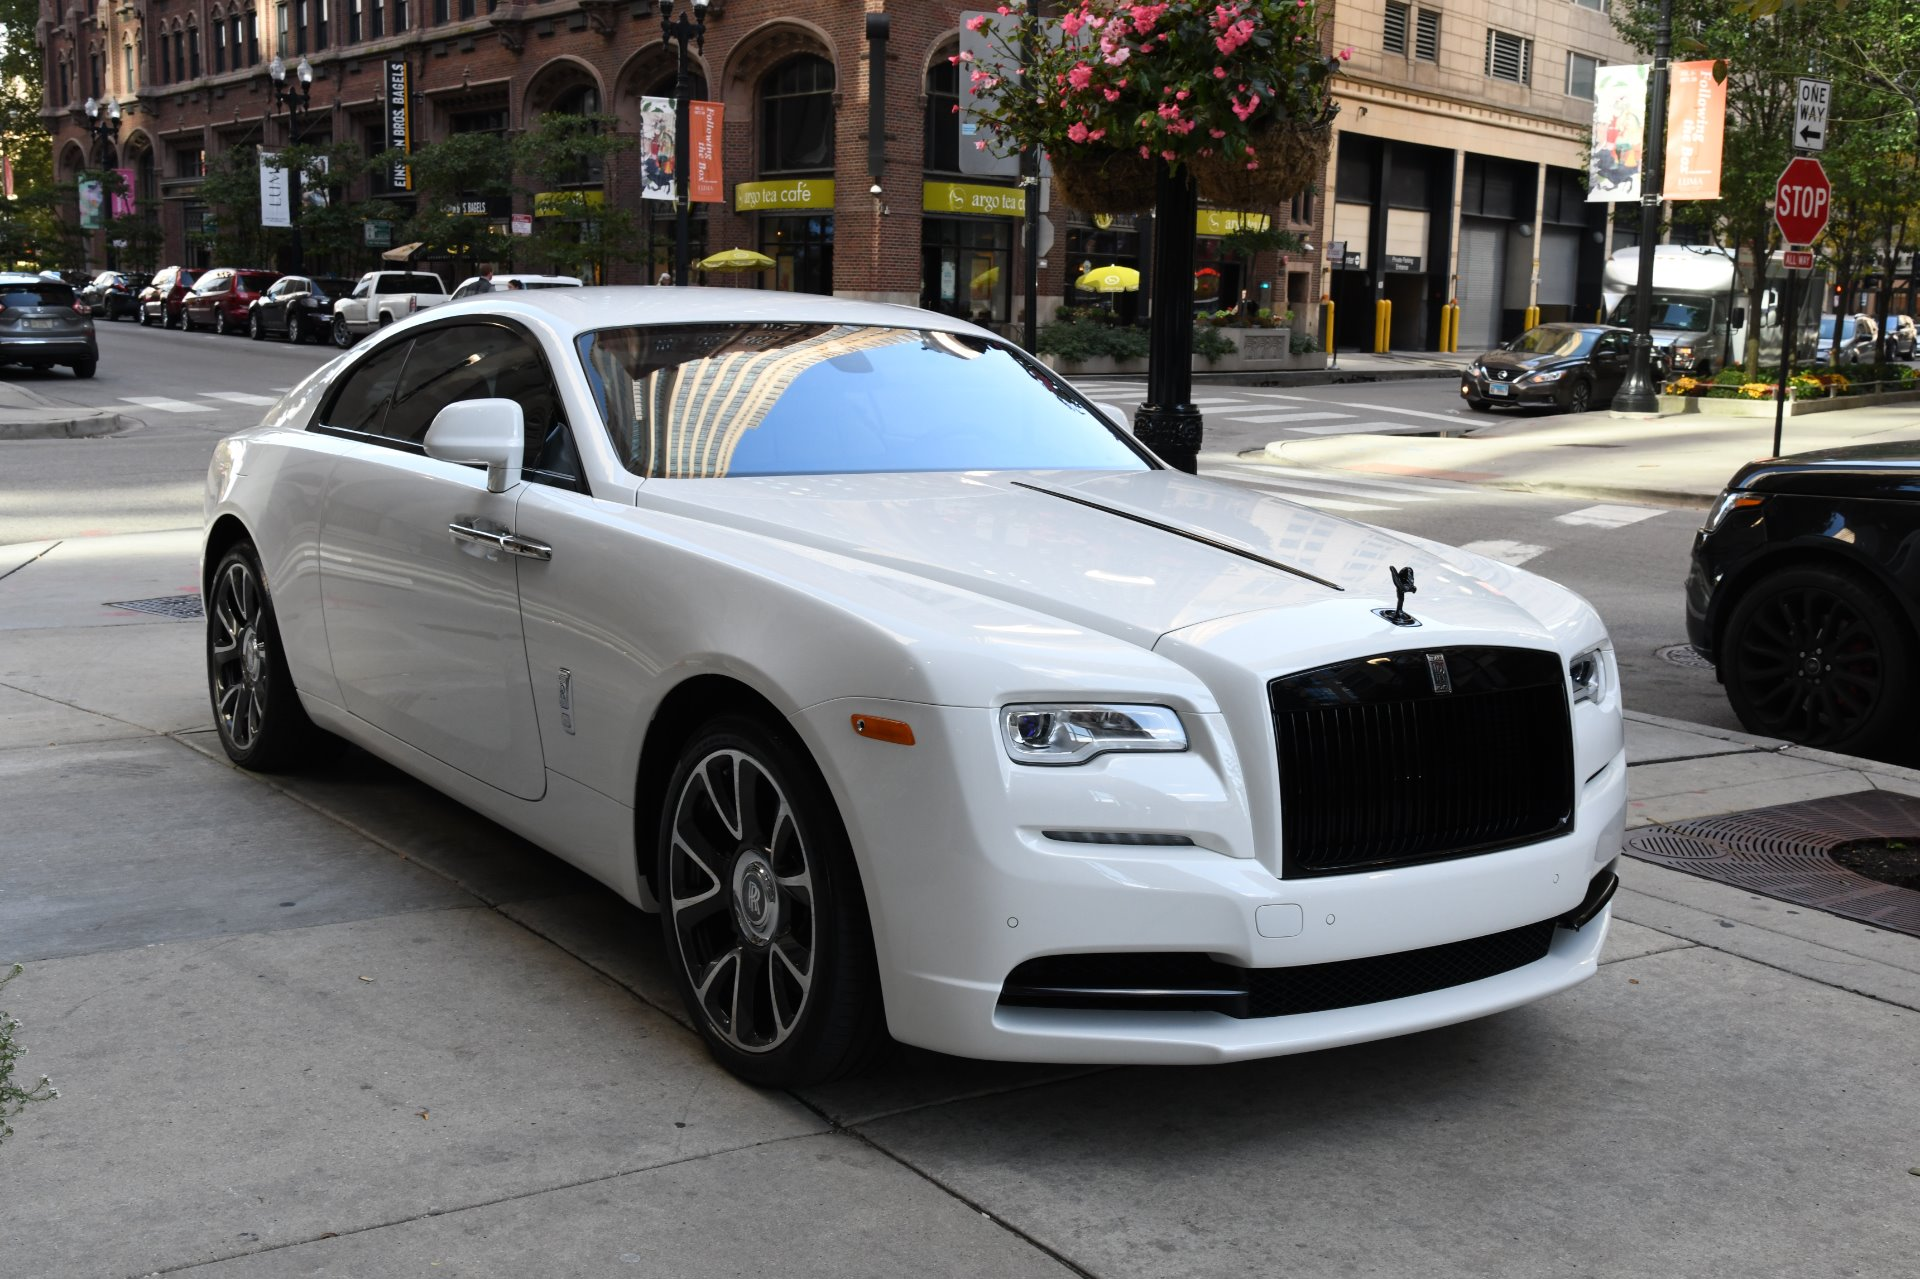 2017 rolls royce wraith stock gc rich55 for sale near chicago il il rolls royce dealer. Black Bedroom Furniture Sets. Home Design Ideas